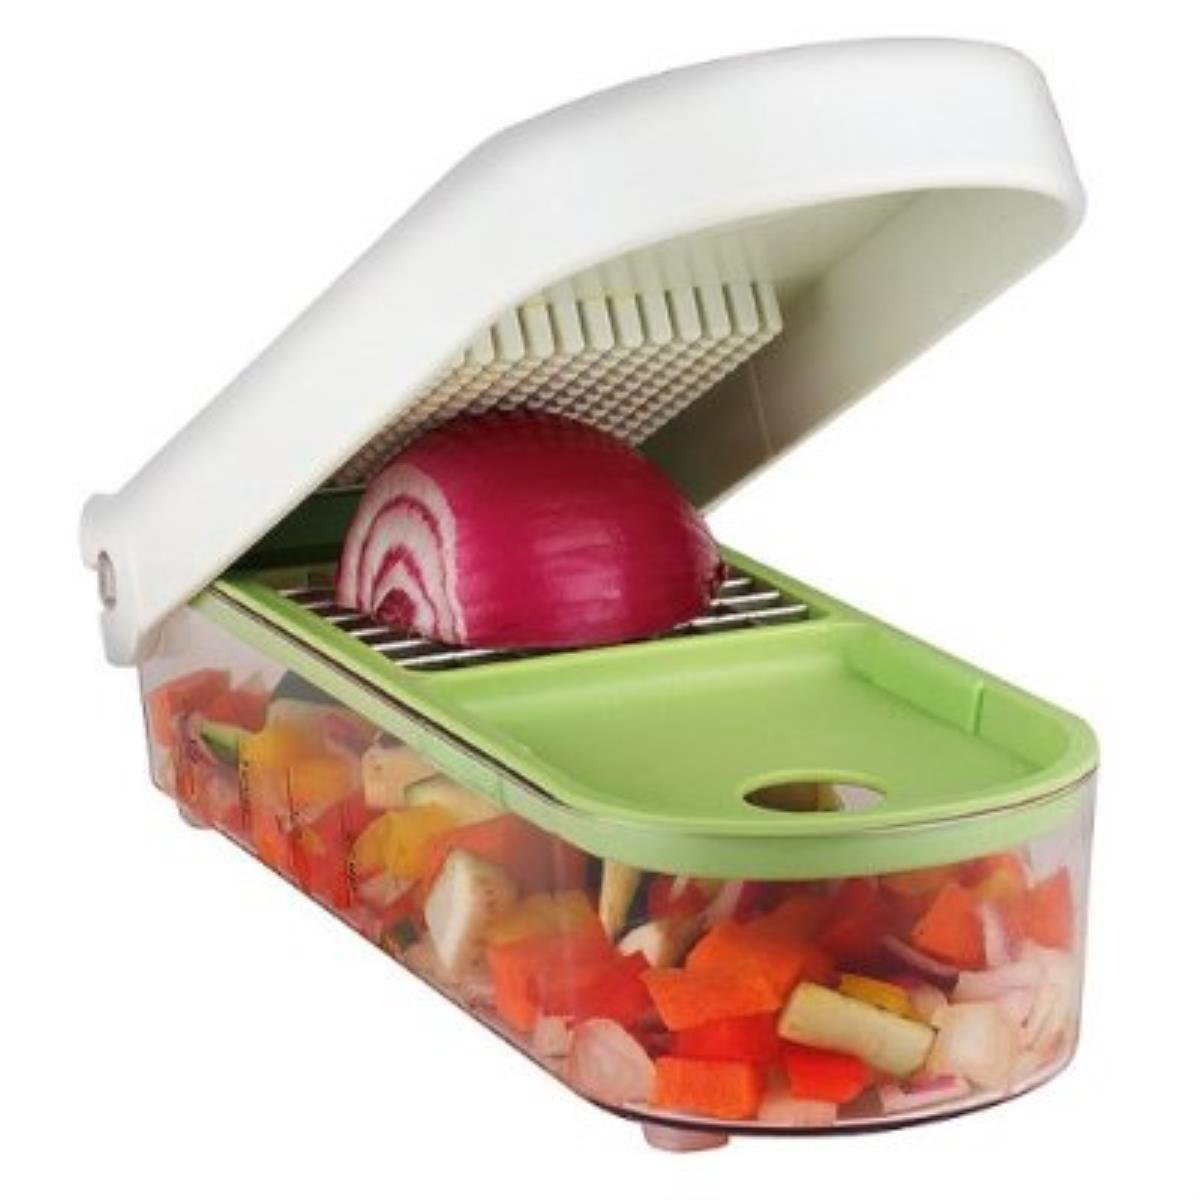 Best Vegetable Chopper Reviews 2019: Top 5+ Recommended 3 #cookymom